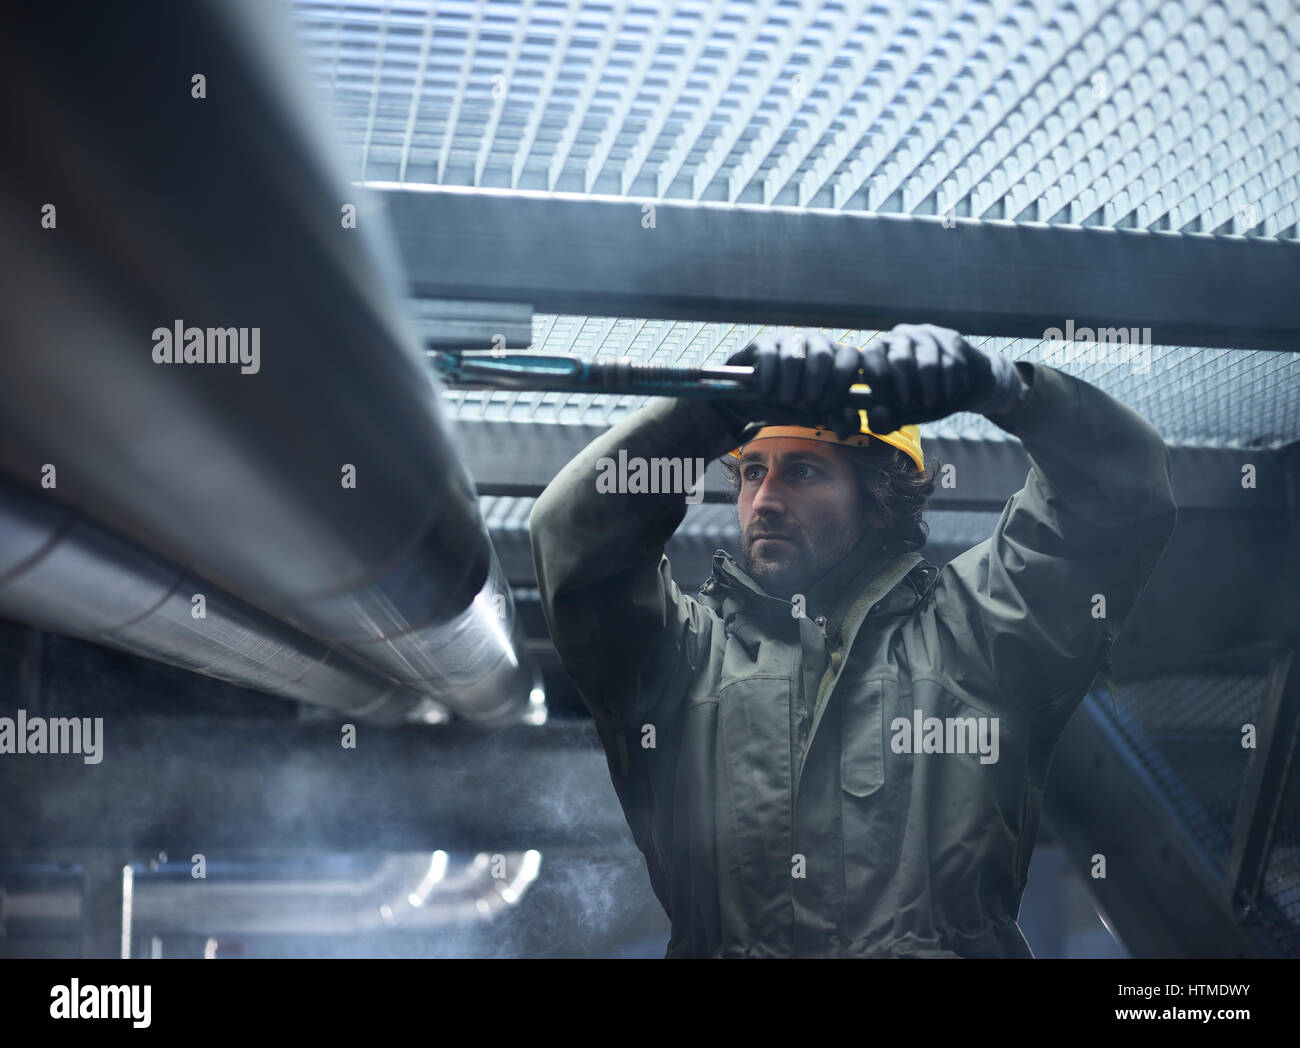 Mechanic, technician fixing mount of a pipeline, Austria - Stock Image